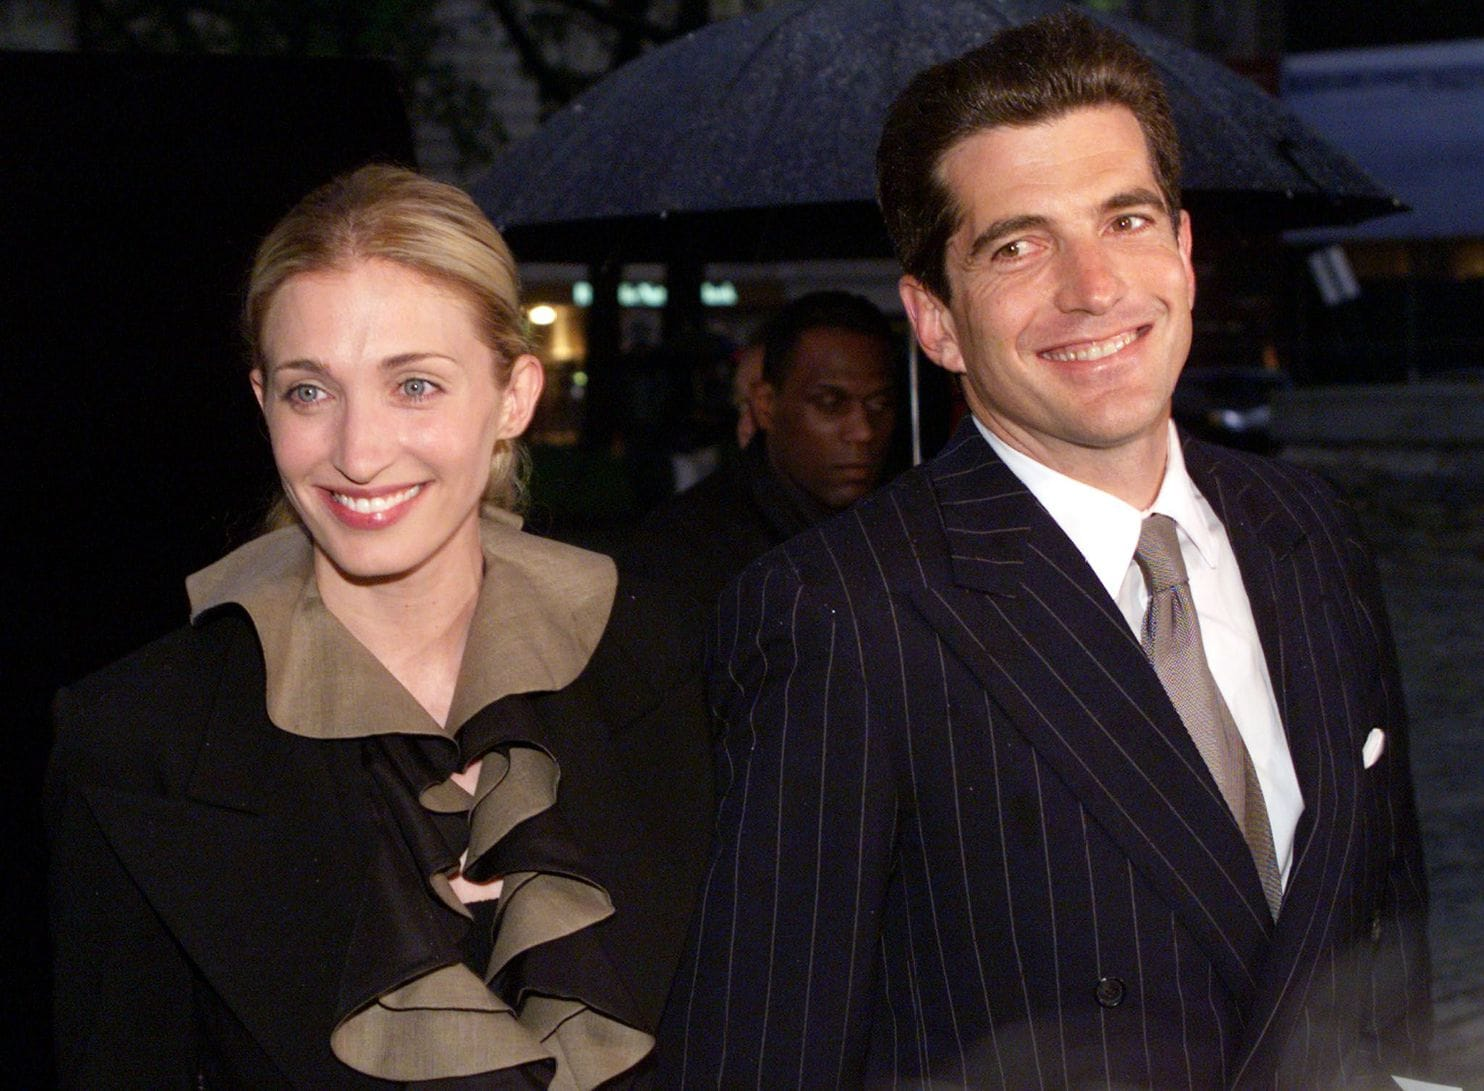 """John F. Kennedy Jr. and his wife, Carolyn Bessette-Kennedy, arrive at the 1999 """"Newman's Own-George Awards"""" in New York. (Photo by Mike Segar/Reuters)"""